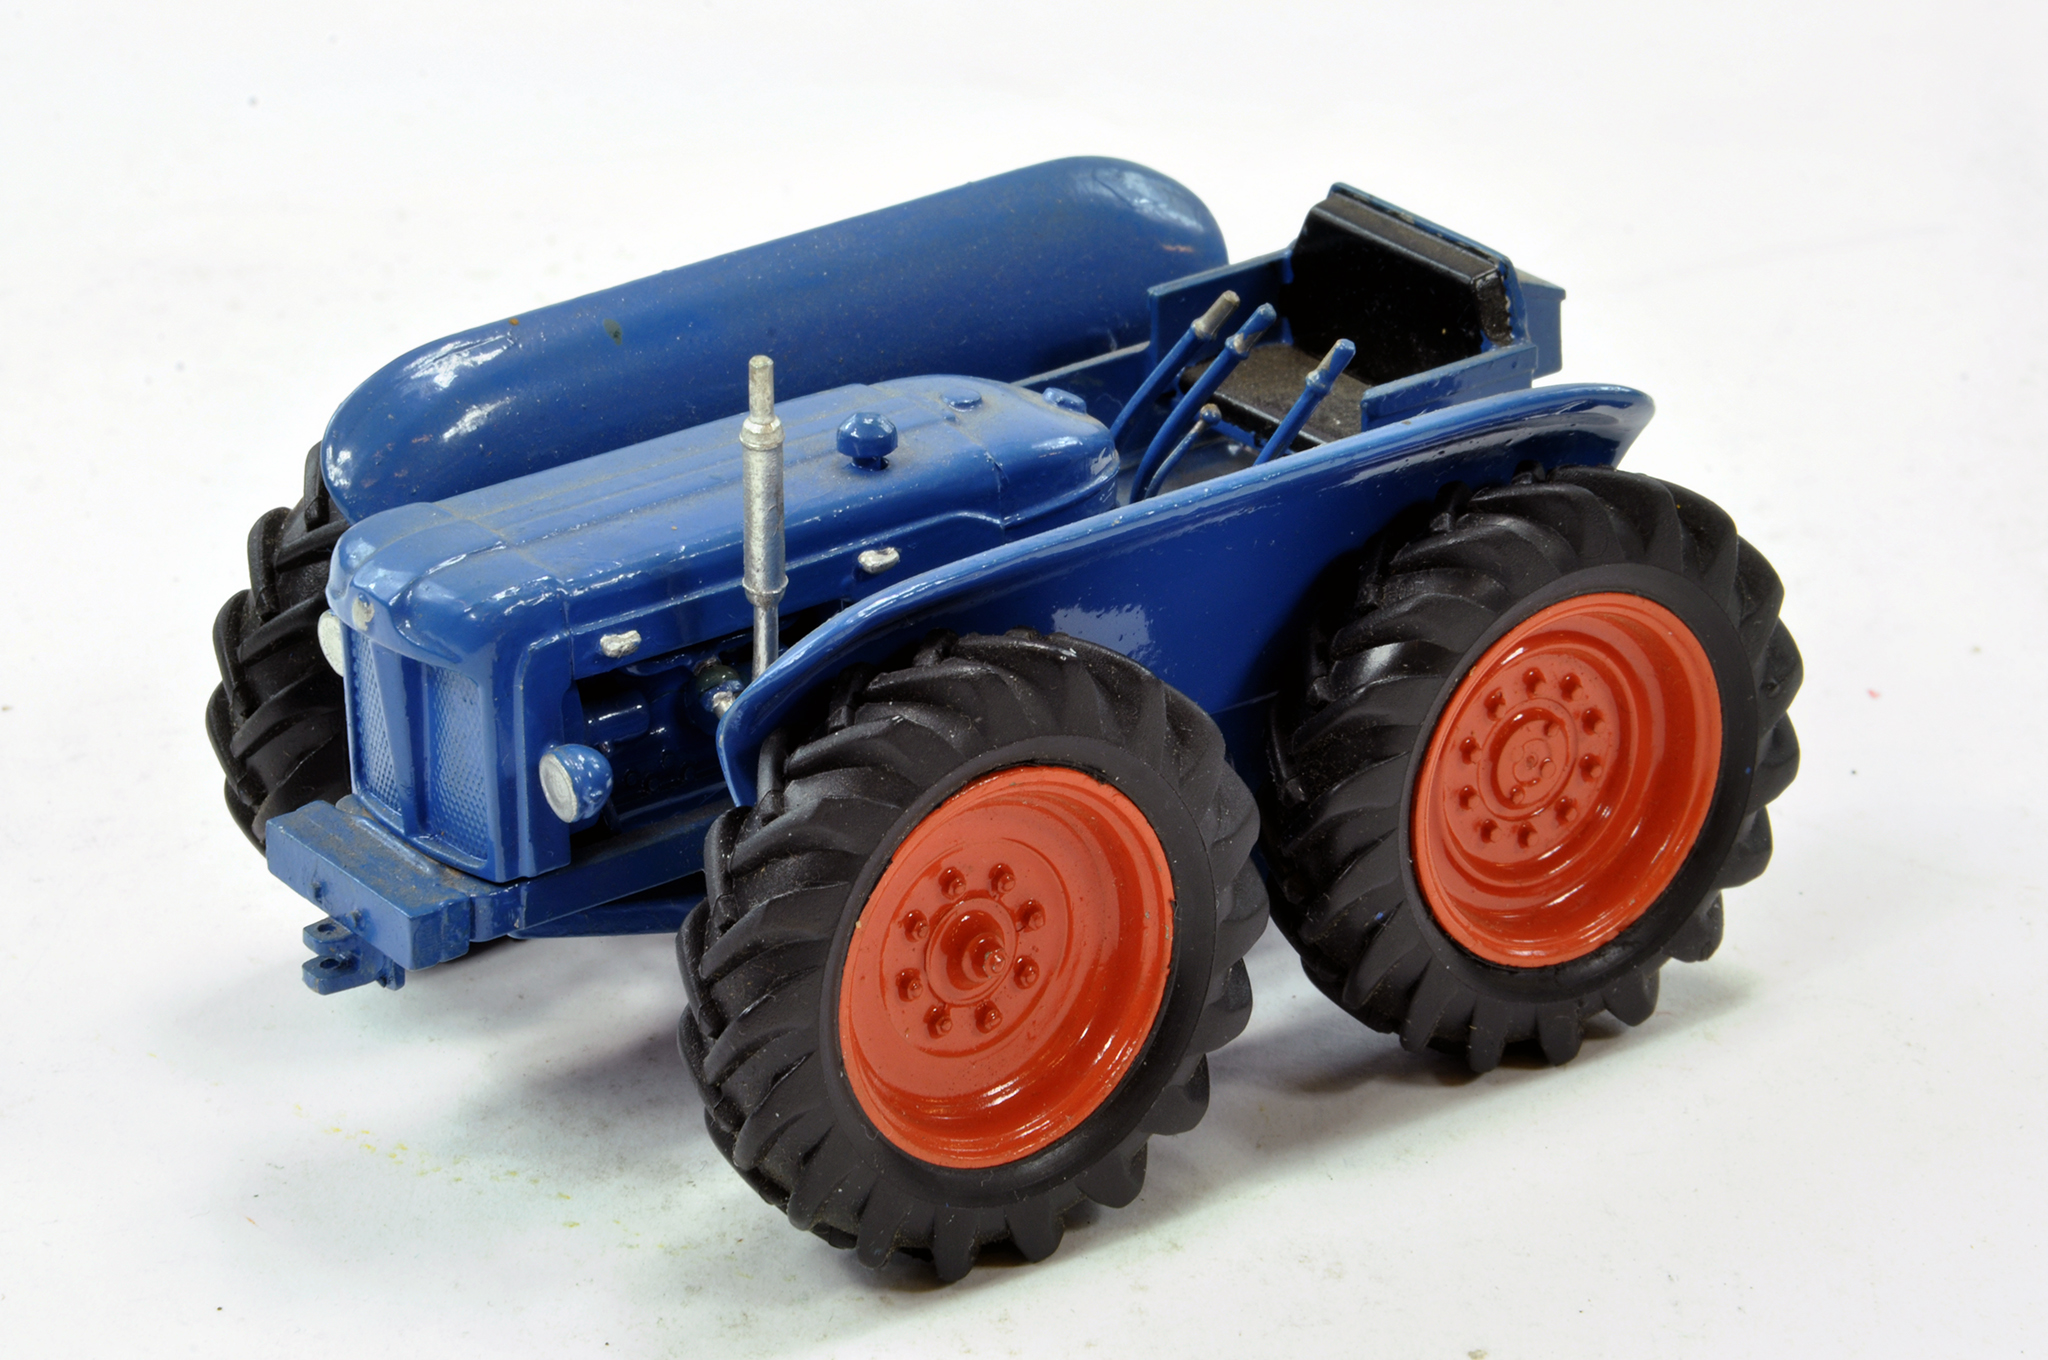 Lot 217 - Scaledown 1/32 Hand Built Fordson County Tractor. Light repair to glue bonnet needed but otherwise